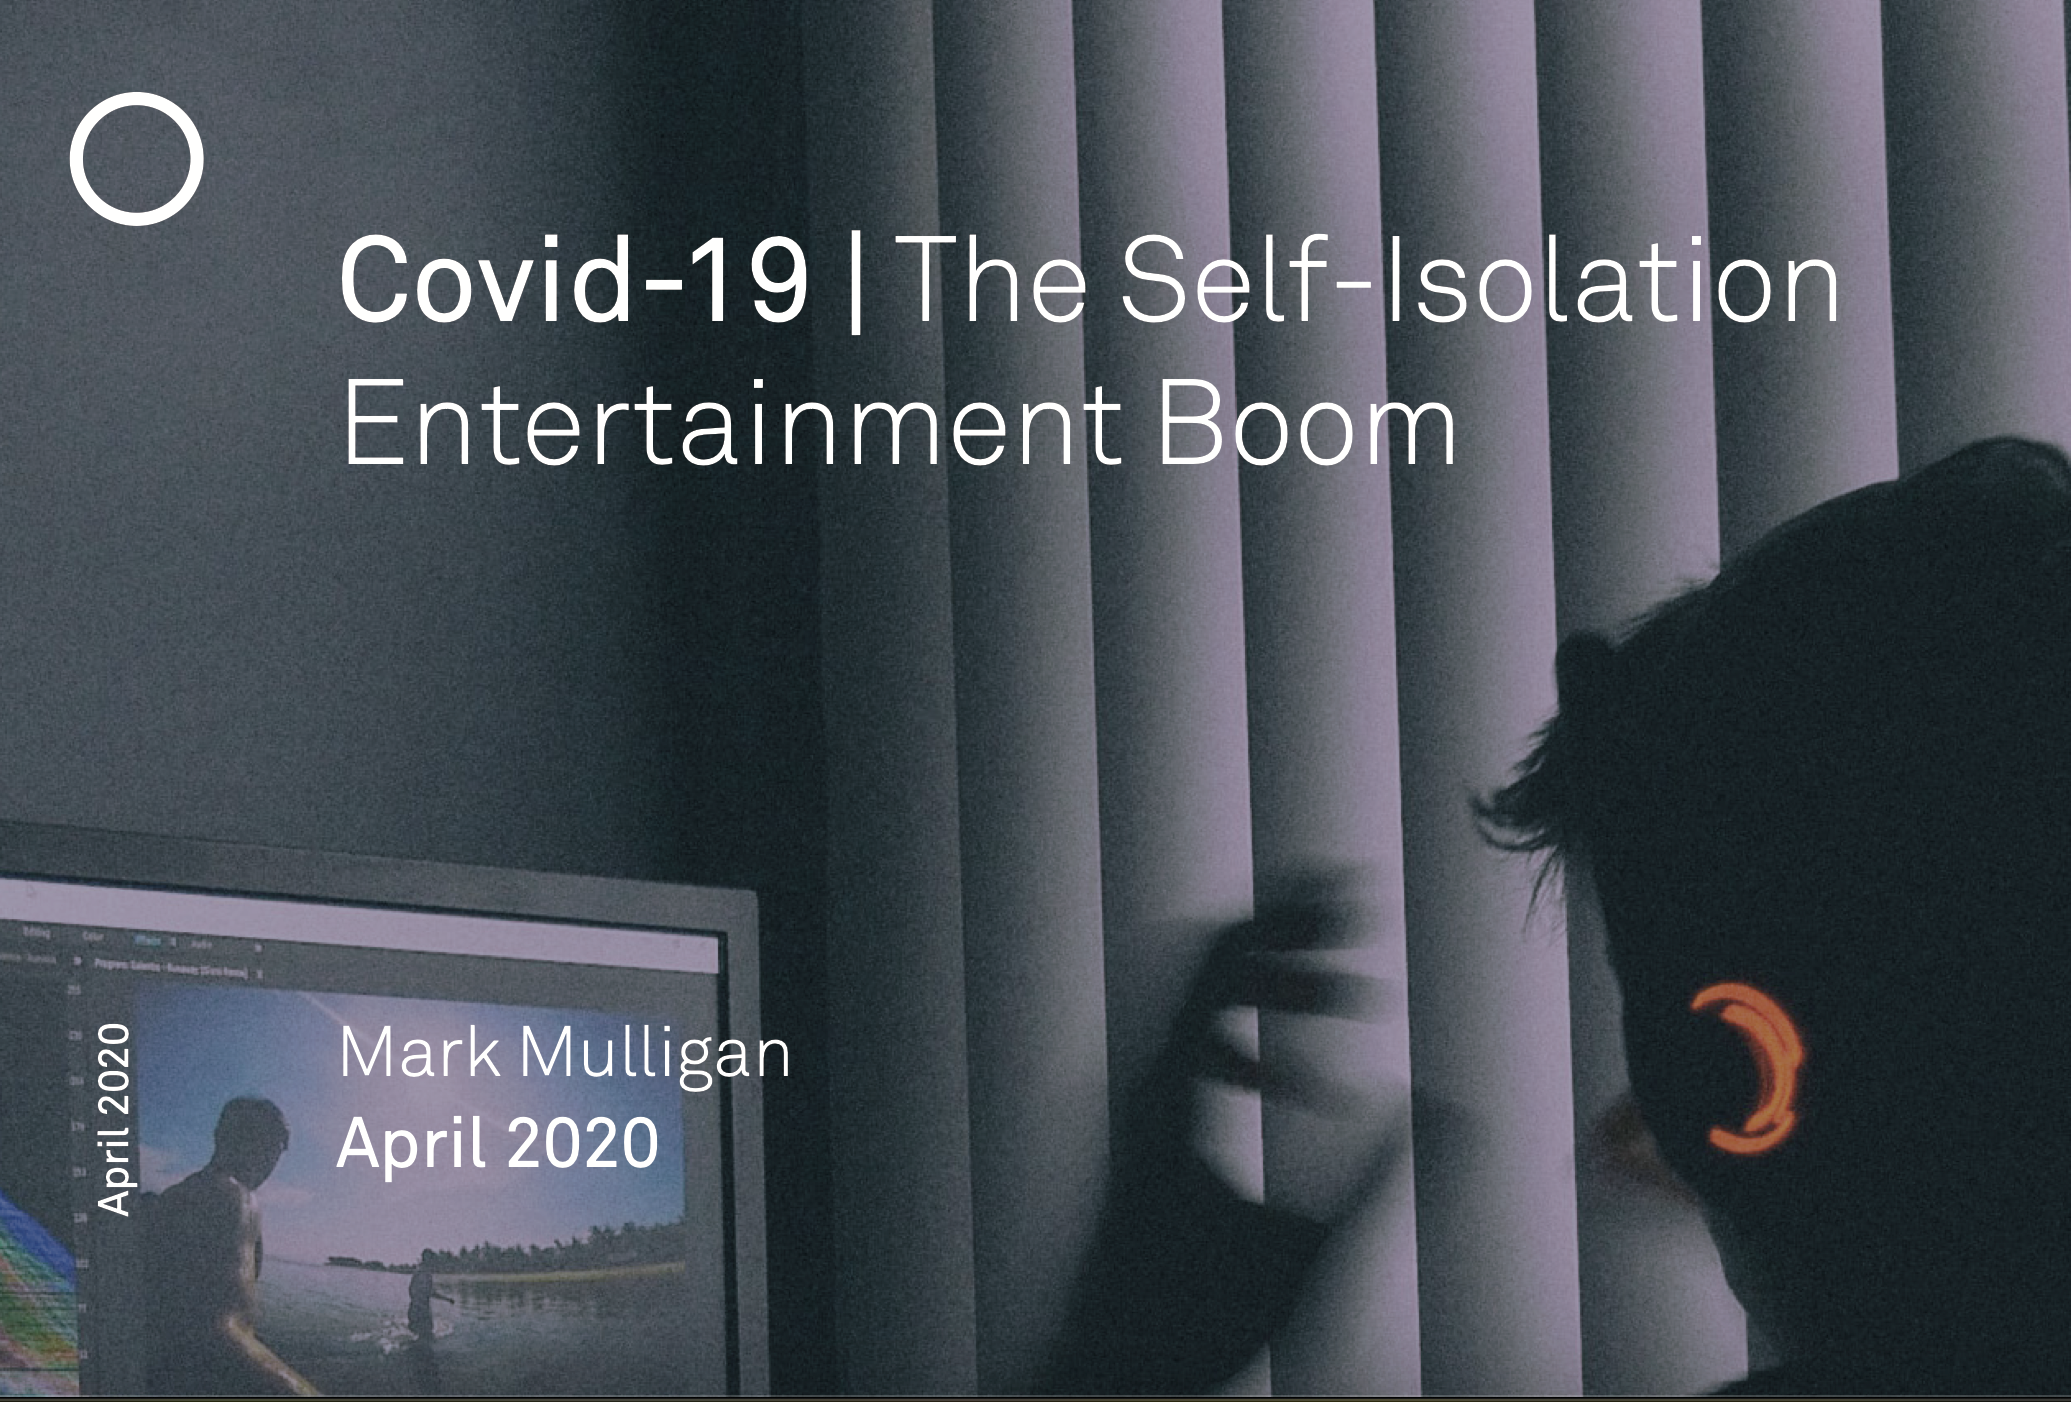 MIDiA Research - The Self-Isolation Entertainment Boom